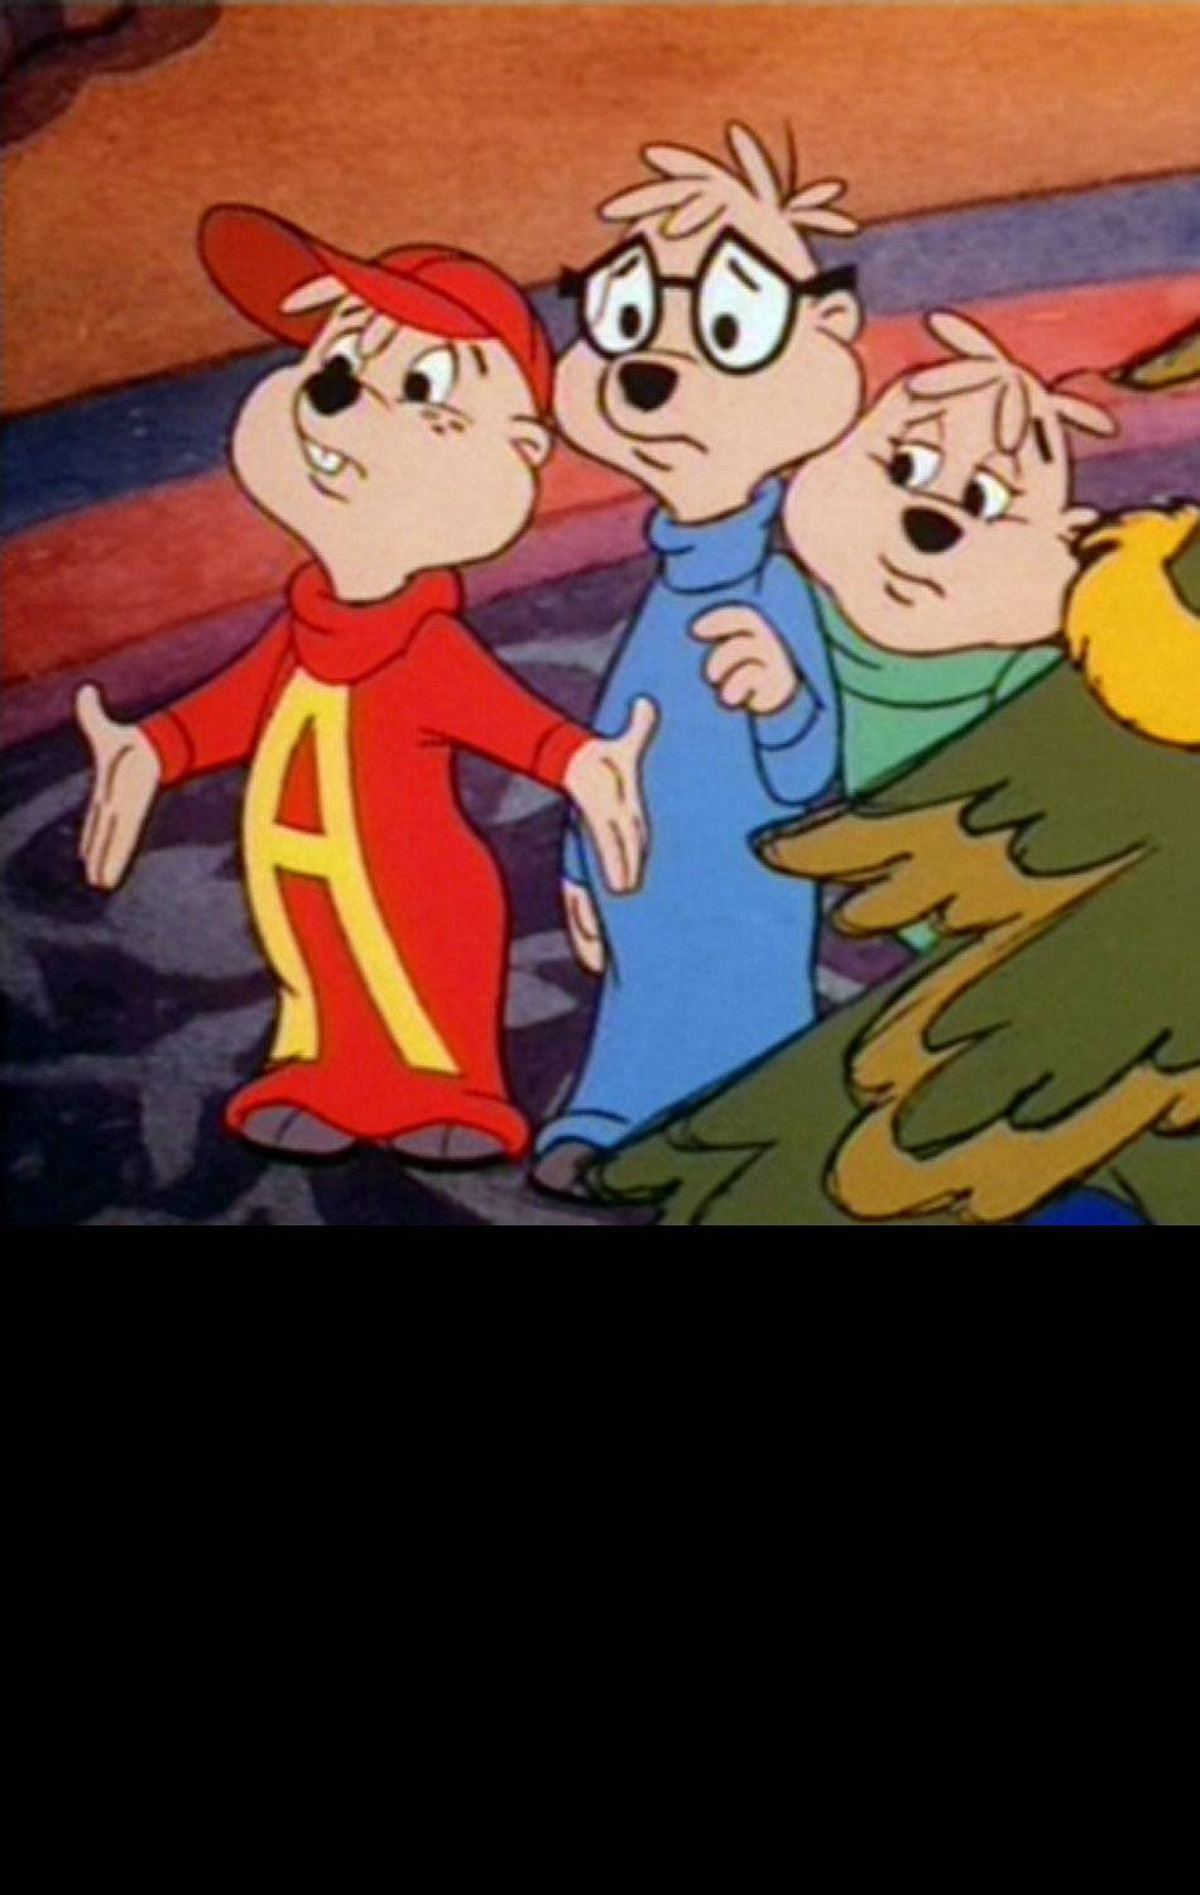 FAMILY A Chipmunk Christmas ABC, 8:30 p.m. If the little ones haven't conned you into taking them to see Alvin and the Chipmunks: Chip-Wrecked, this holiday cartoon might buy you some time. Of course the kids will immediately realize that the 1981 special is far less imaginative than the current incarnation of the Chipmunks, which were originally created for a novelty song way back in 1958. The minimalist plotline has the singing rodent trio booked for a high-profile appearance at Carnegie Hall – but only if they can locate Alvin's missing harmonica. Not as slick as the movie, but still pretty cute.